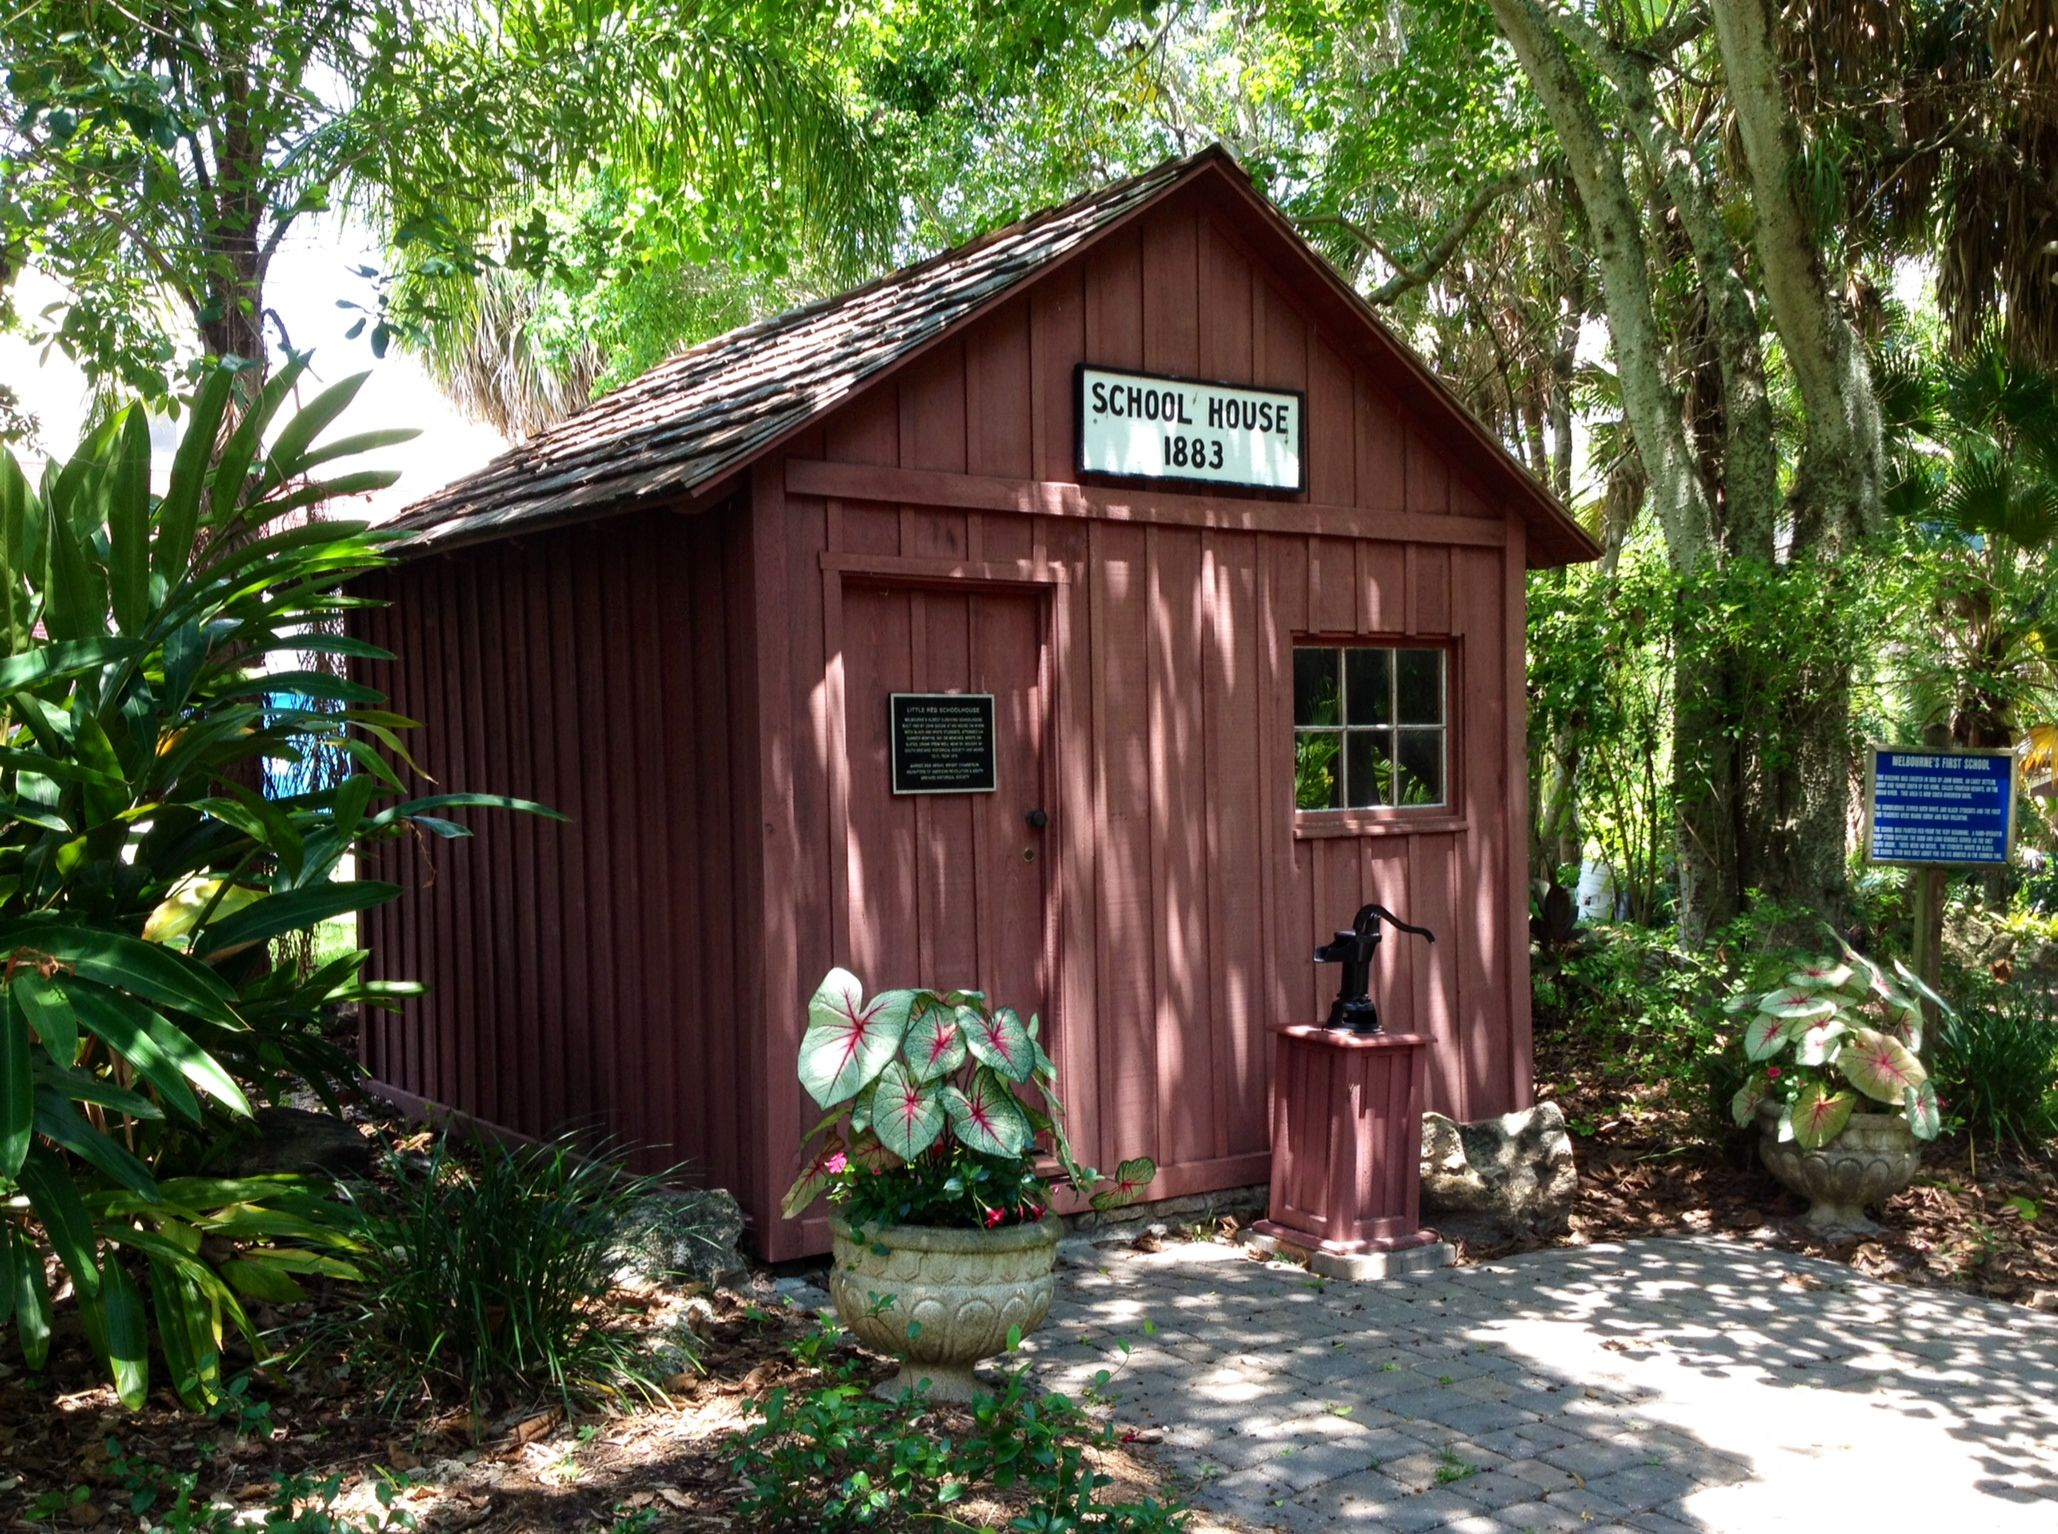 School House Florida botanical gardens, Botanical